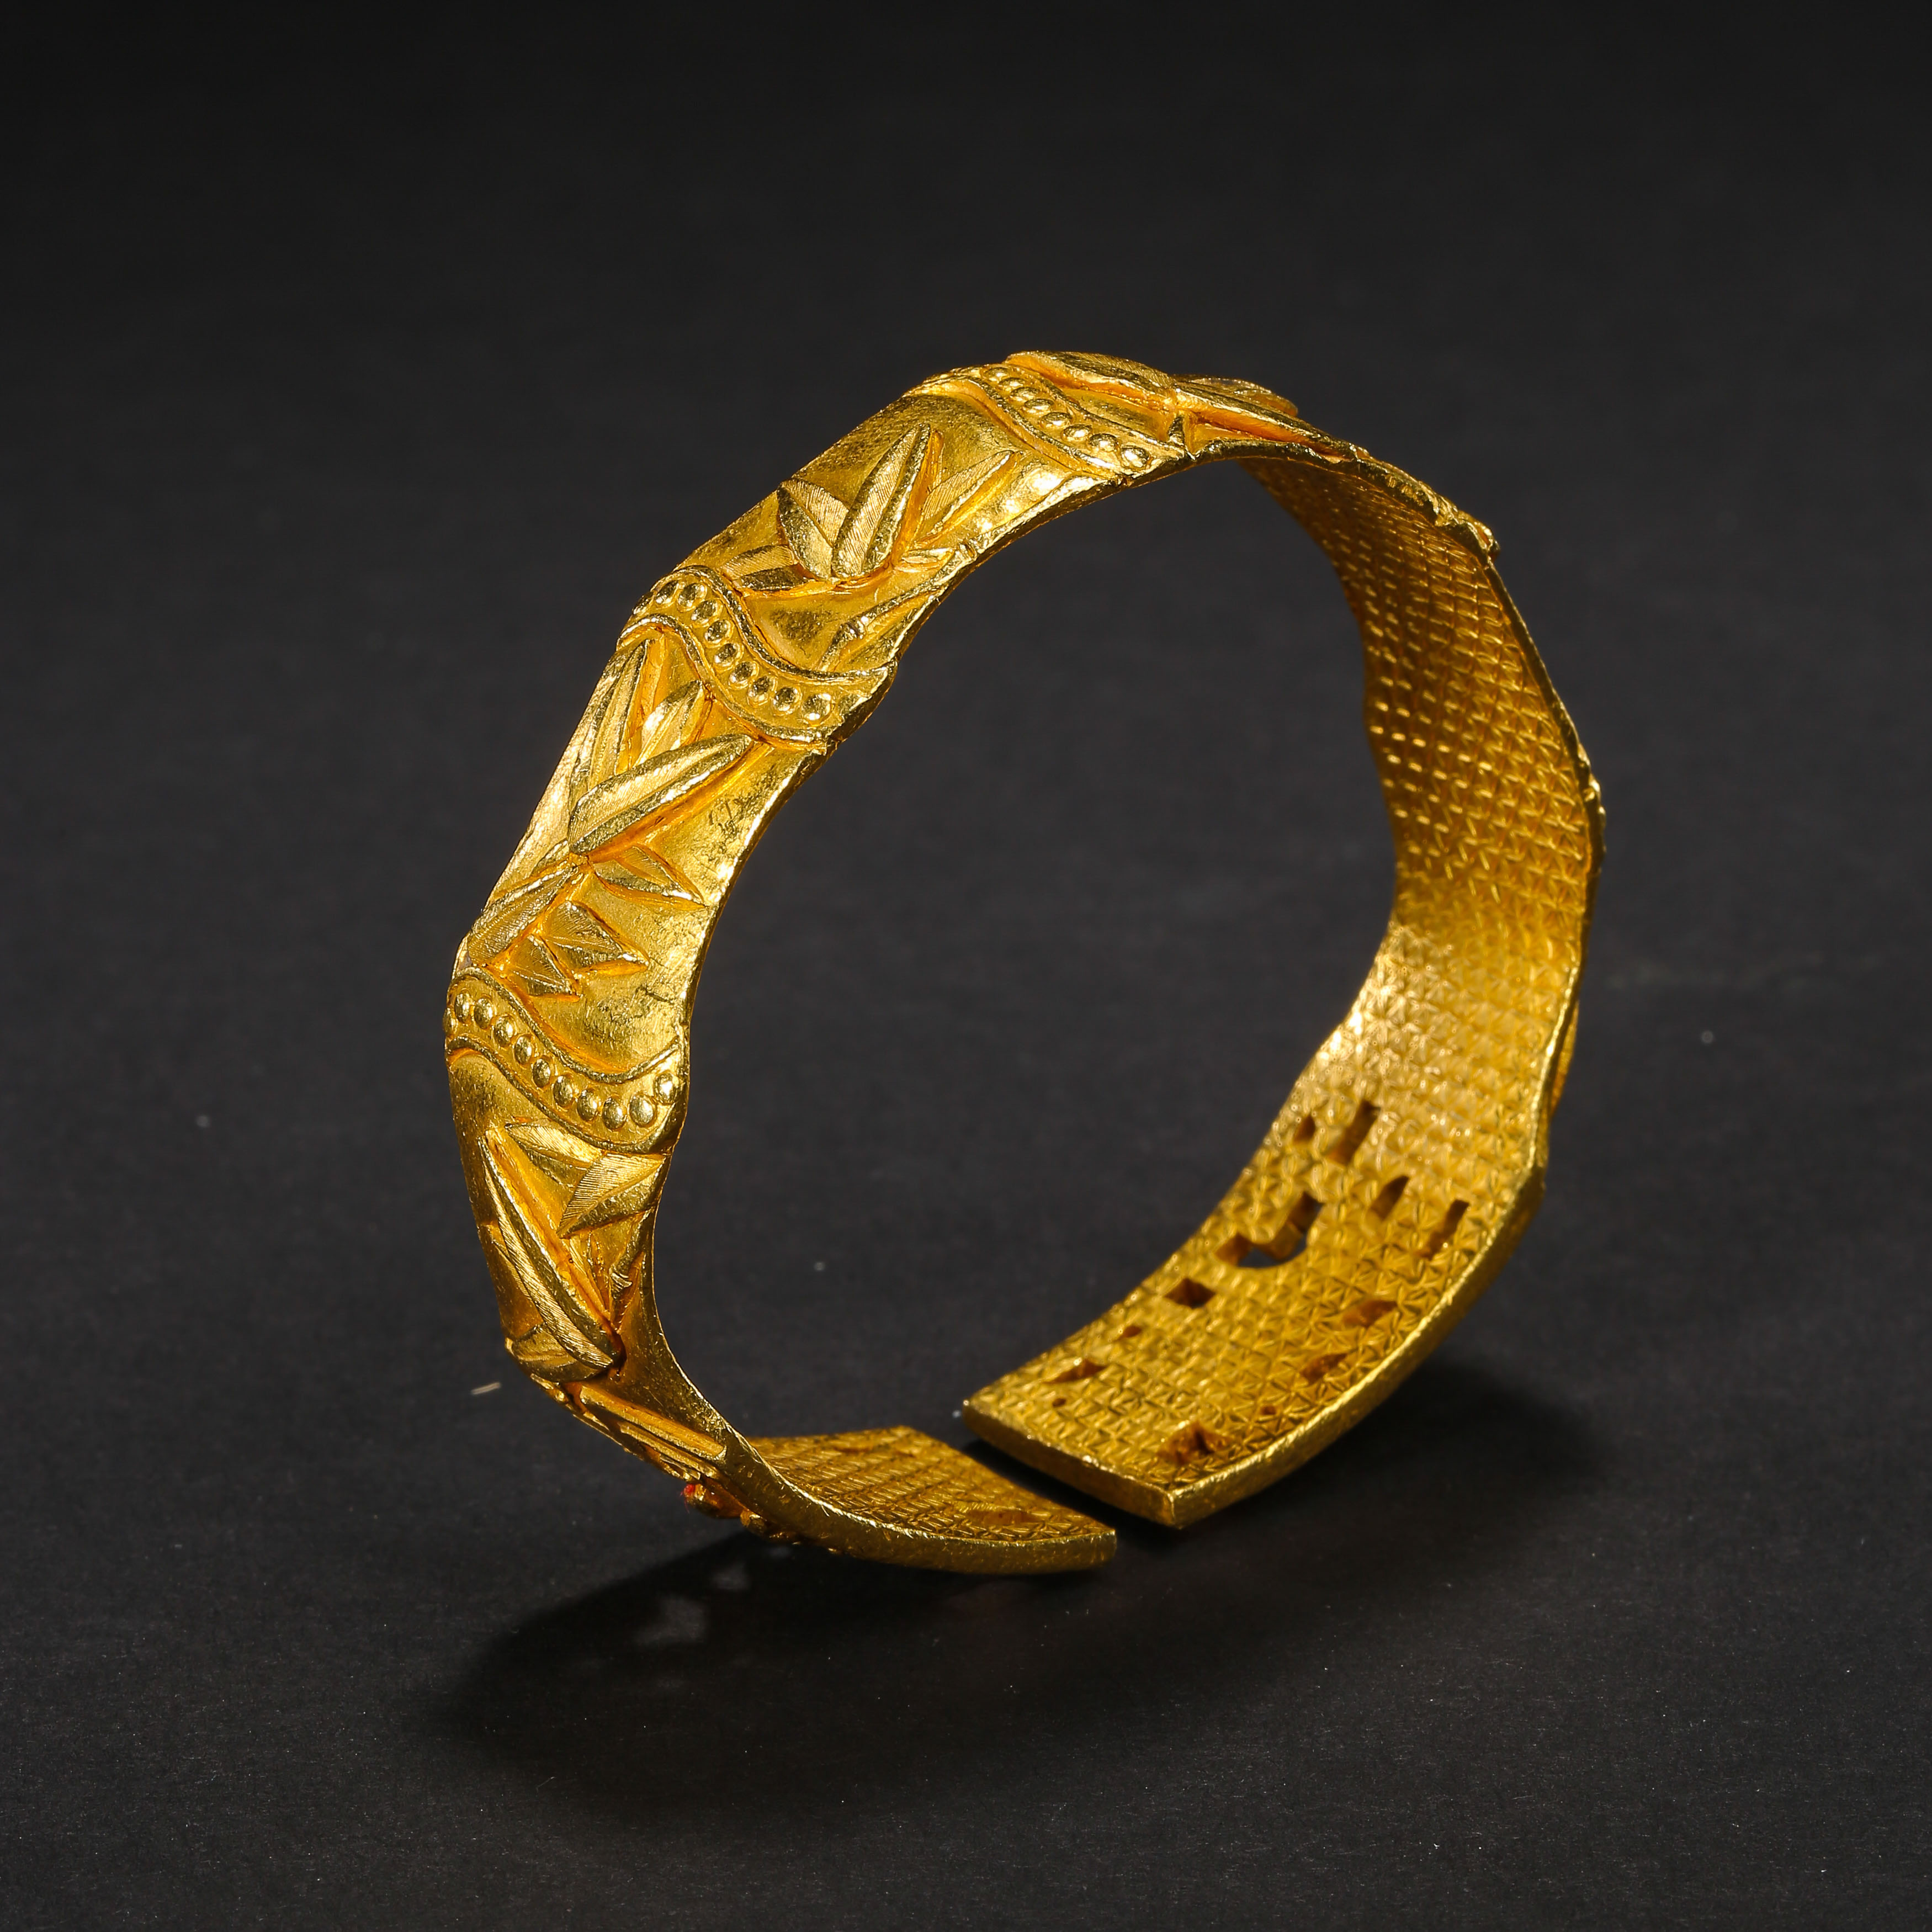 A PAIR OF PURE GOLD BRACELETS, QING DYNASTY, CHINA - Image 10 of 11